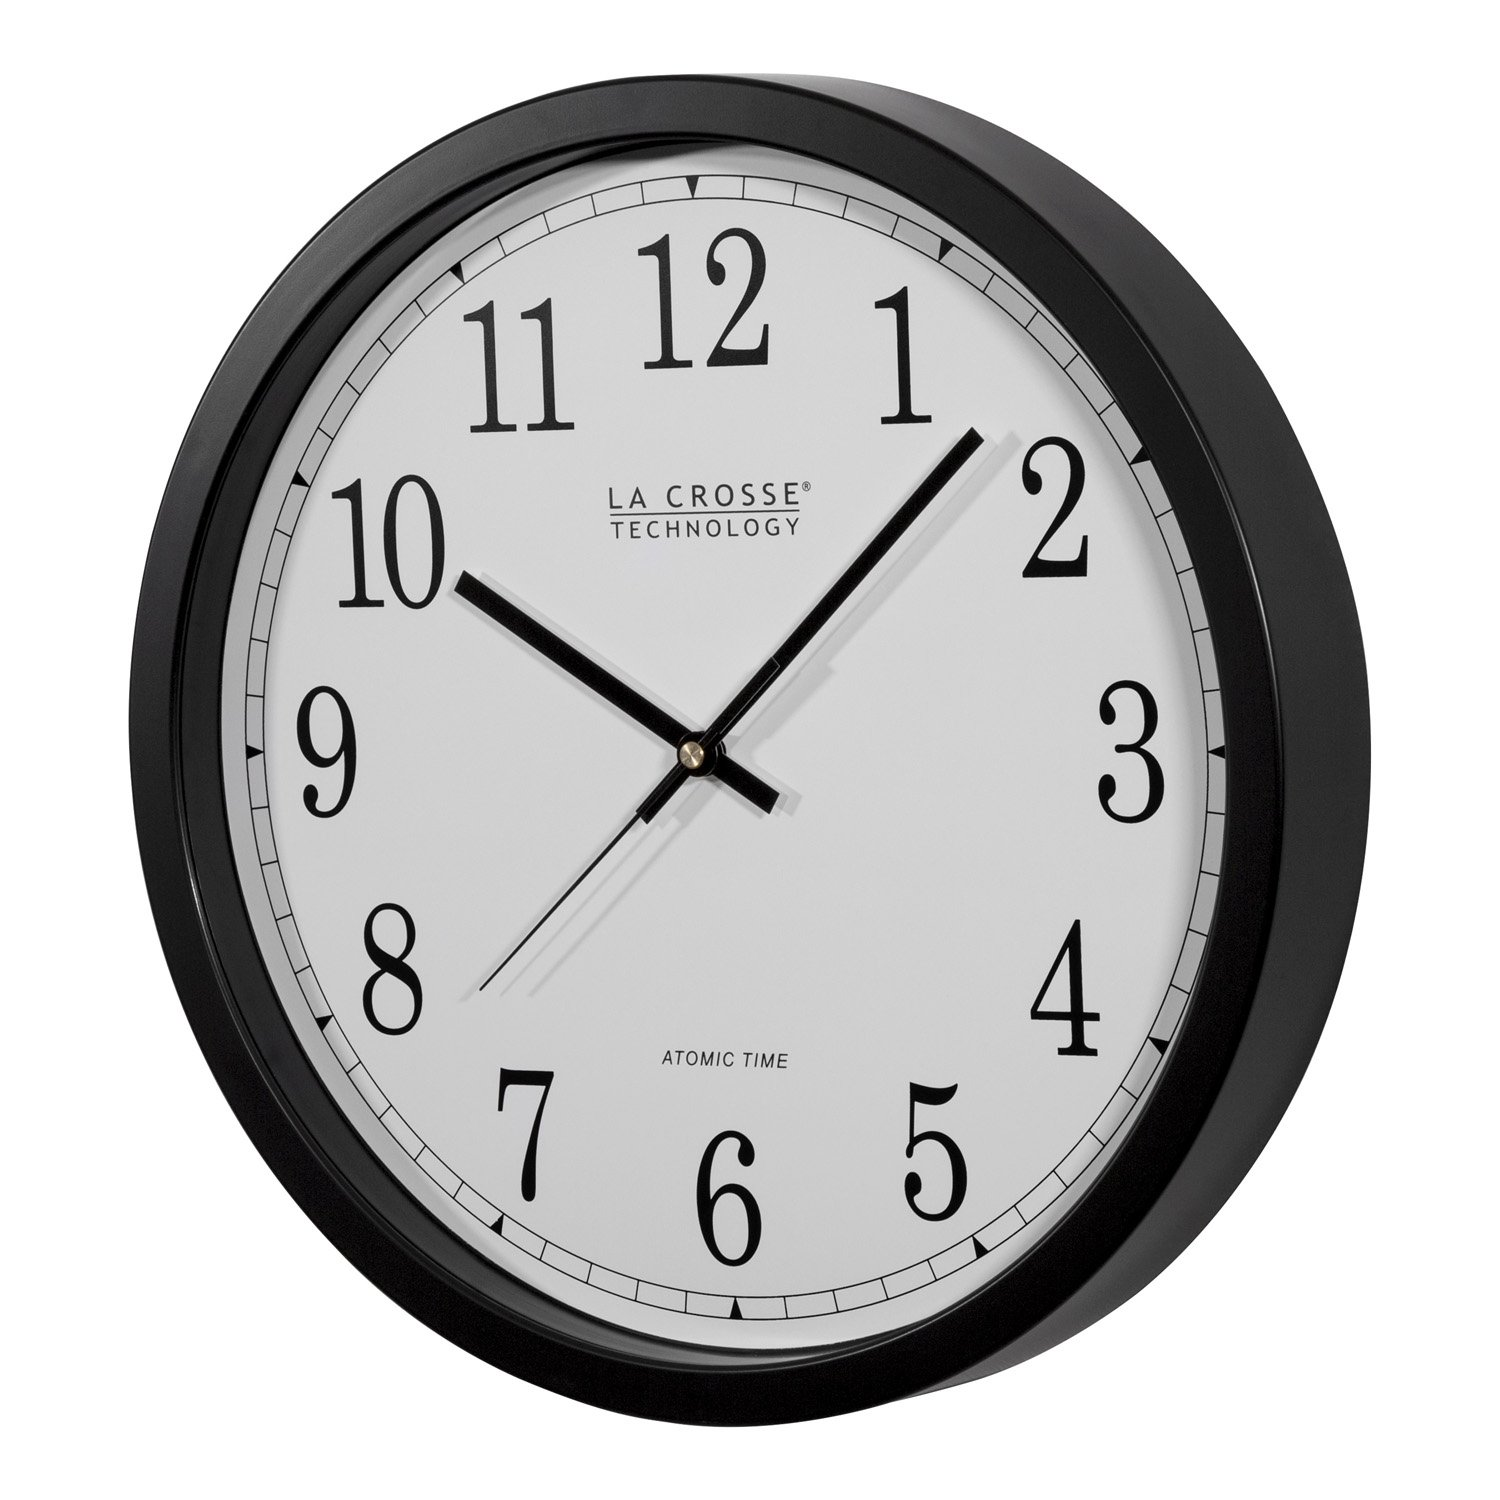 Amazon la crosse technology wt 3143a int 14 inch atomic wall amazon la crosse technology wt 3143a int 14 inch atomic wall clock black home kitchen amipublicfo Images